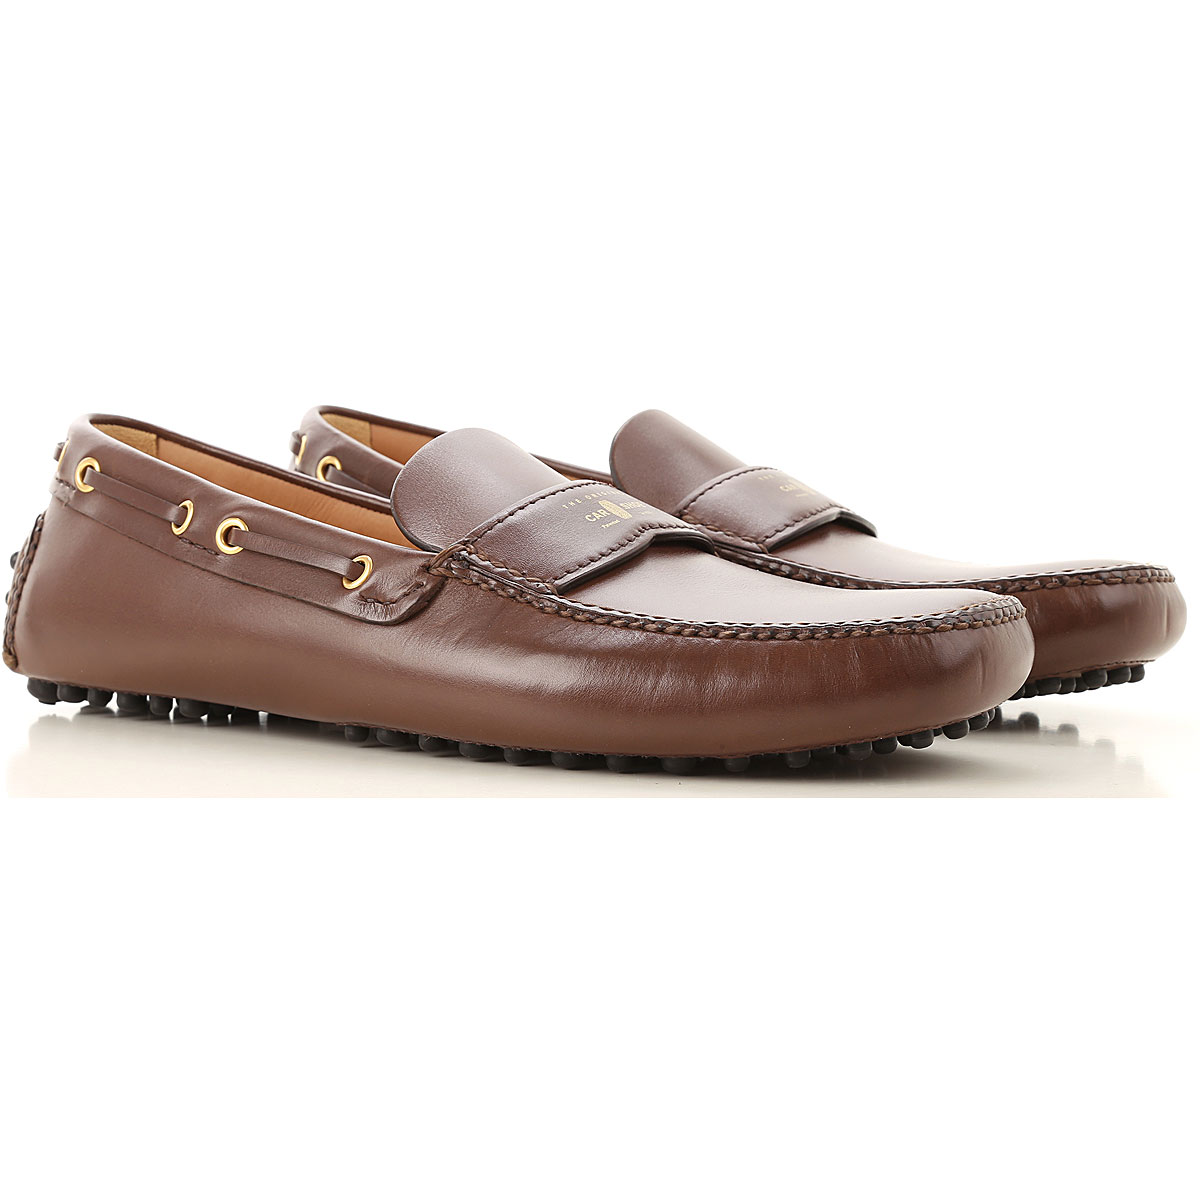 Car Shoe Loafers for Men in Outlet Brown USA - GOOFASH